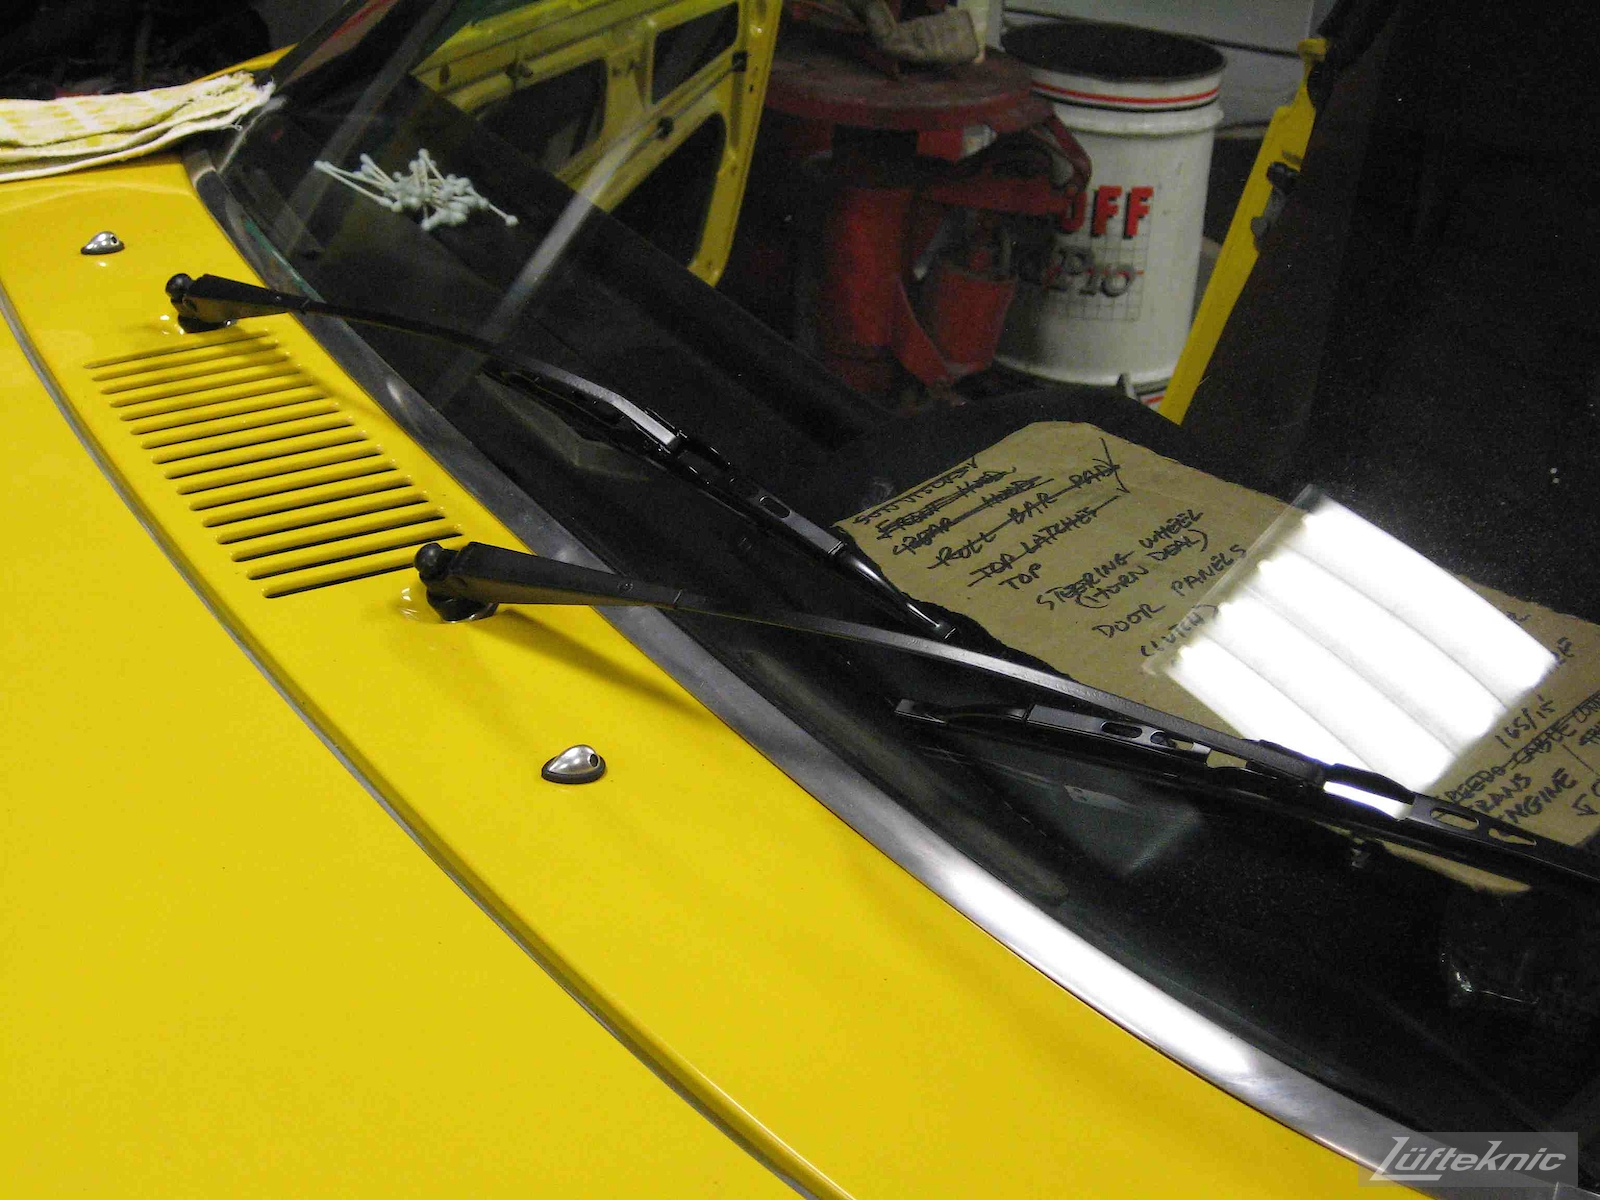 Windshield wiper details with a checklist on the dash of a restored yellow Porsche 914 at Lufteknic.